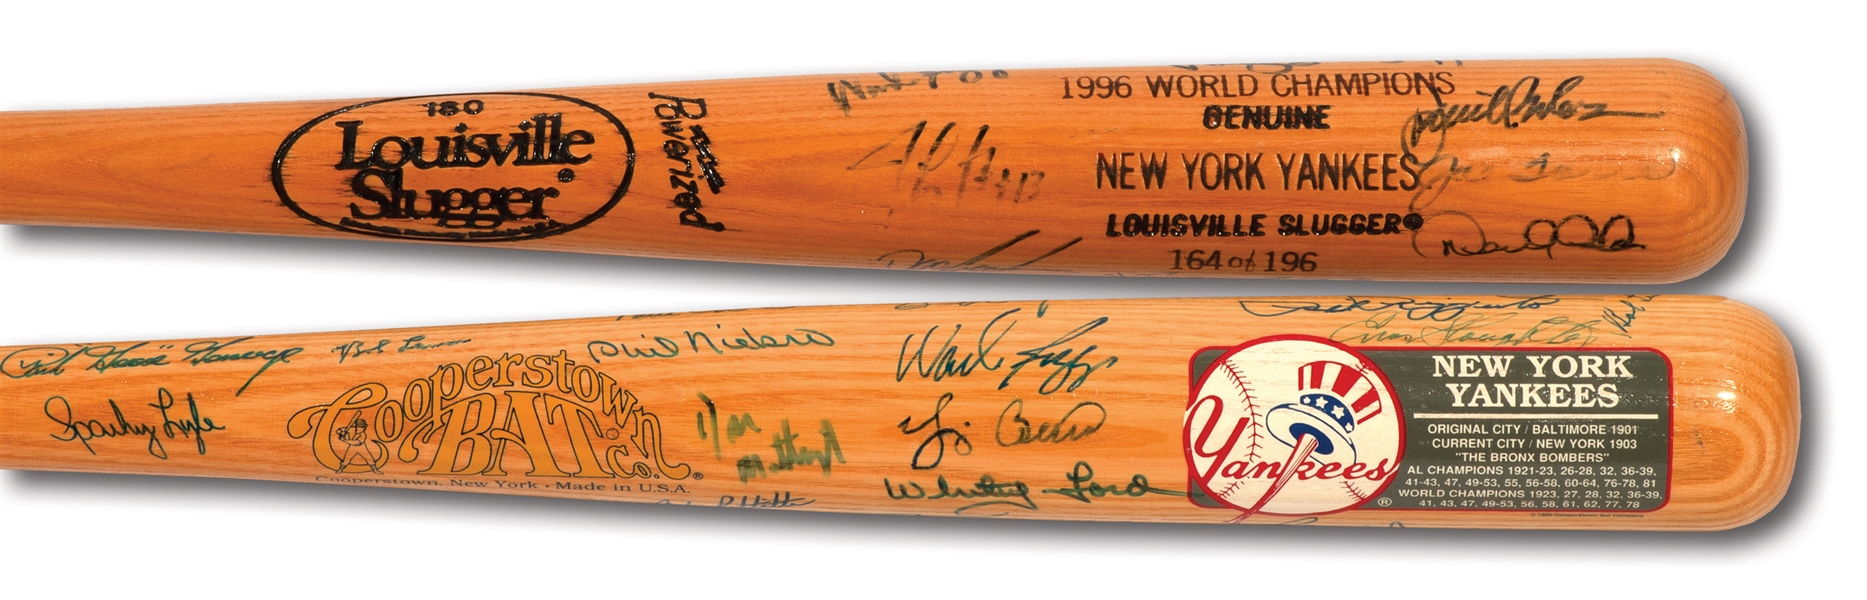 NEW YORK YANKEES PAIR OF MULTI-SIGNED BATS INCL. 1996 TEAM AND ALL-TIME GREATS (PINSTRIPE DYNASTY COLLECTION)